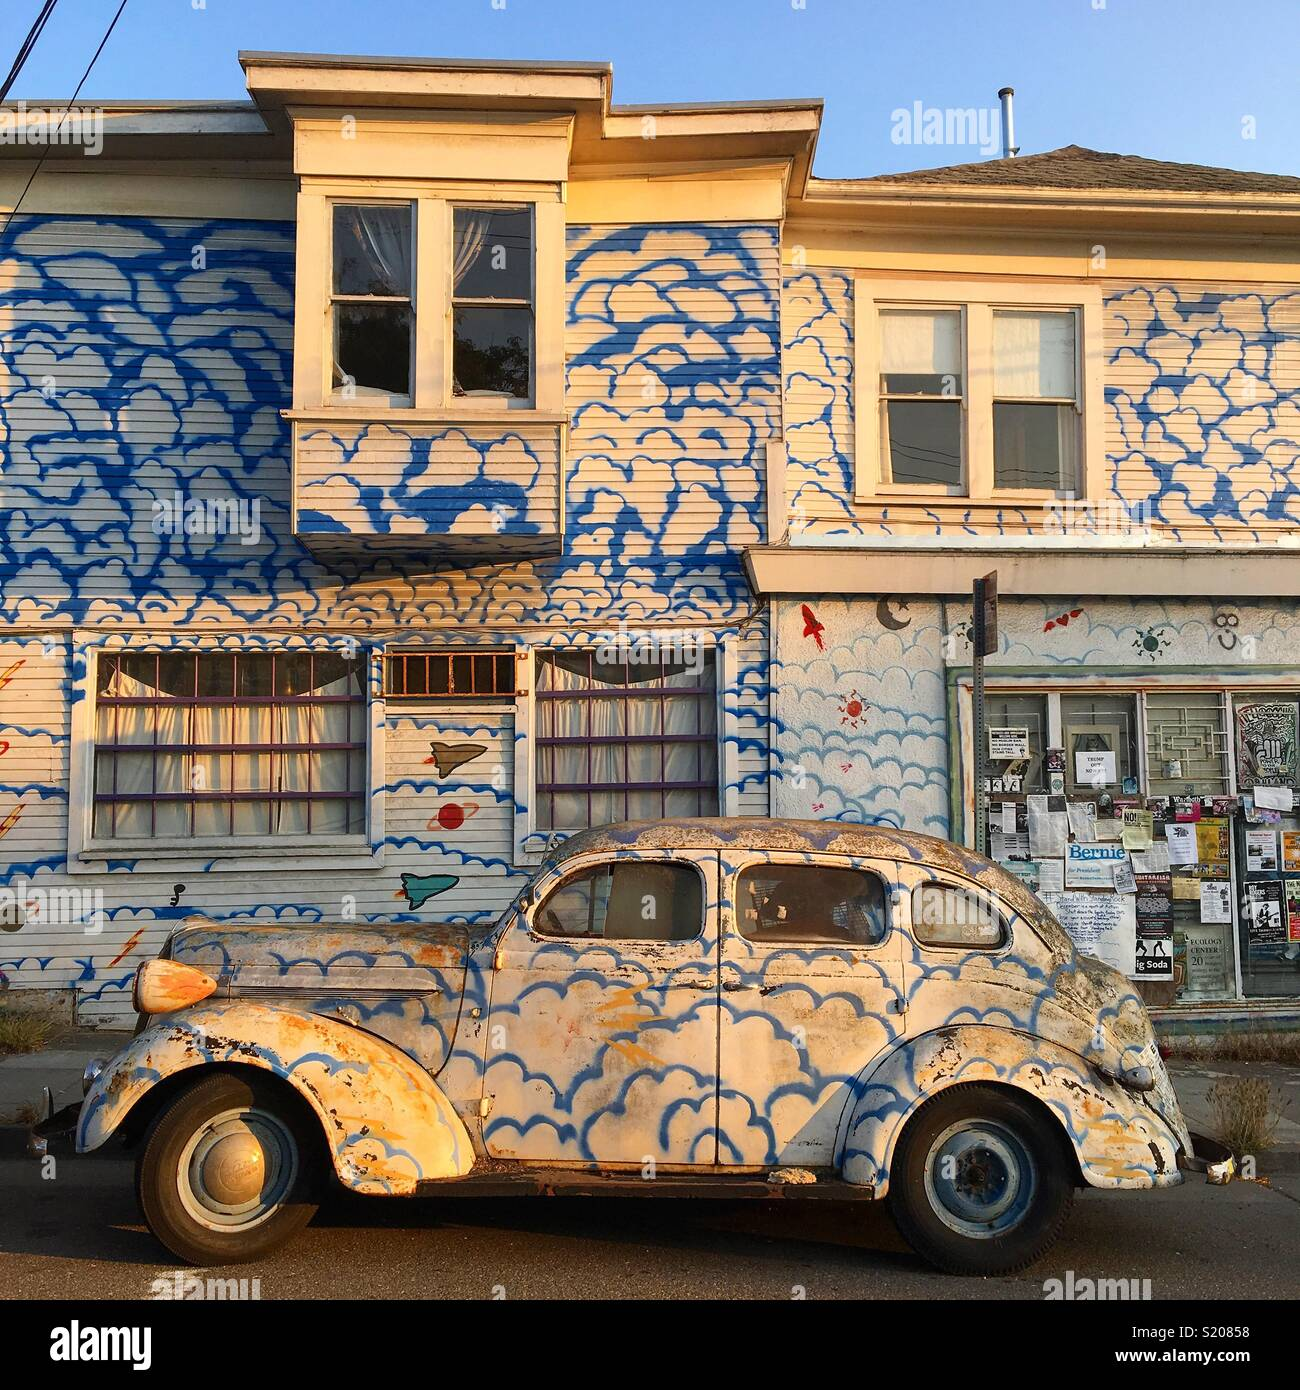 A car parked in front of a house with matching paint - Stock Image